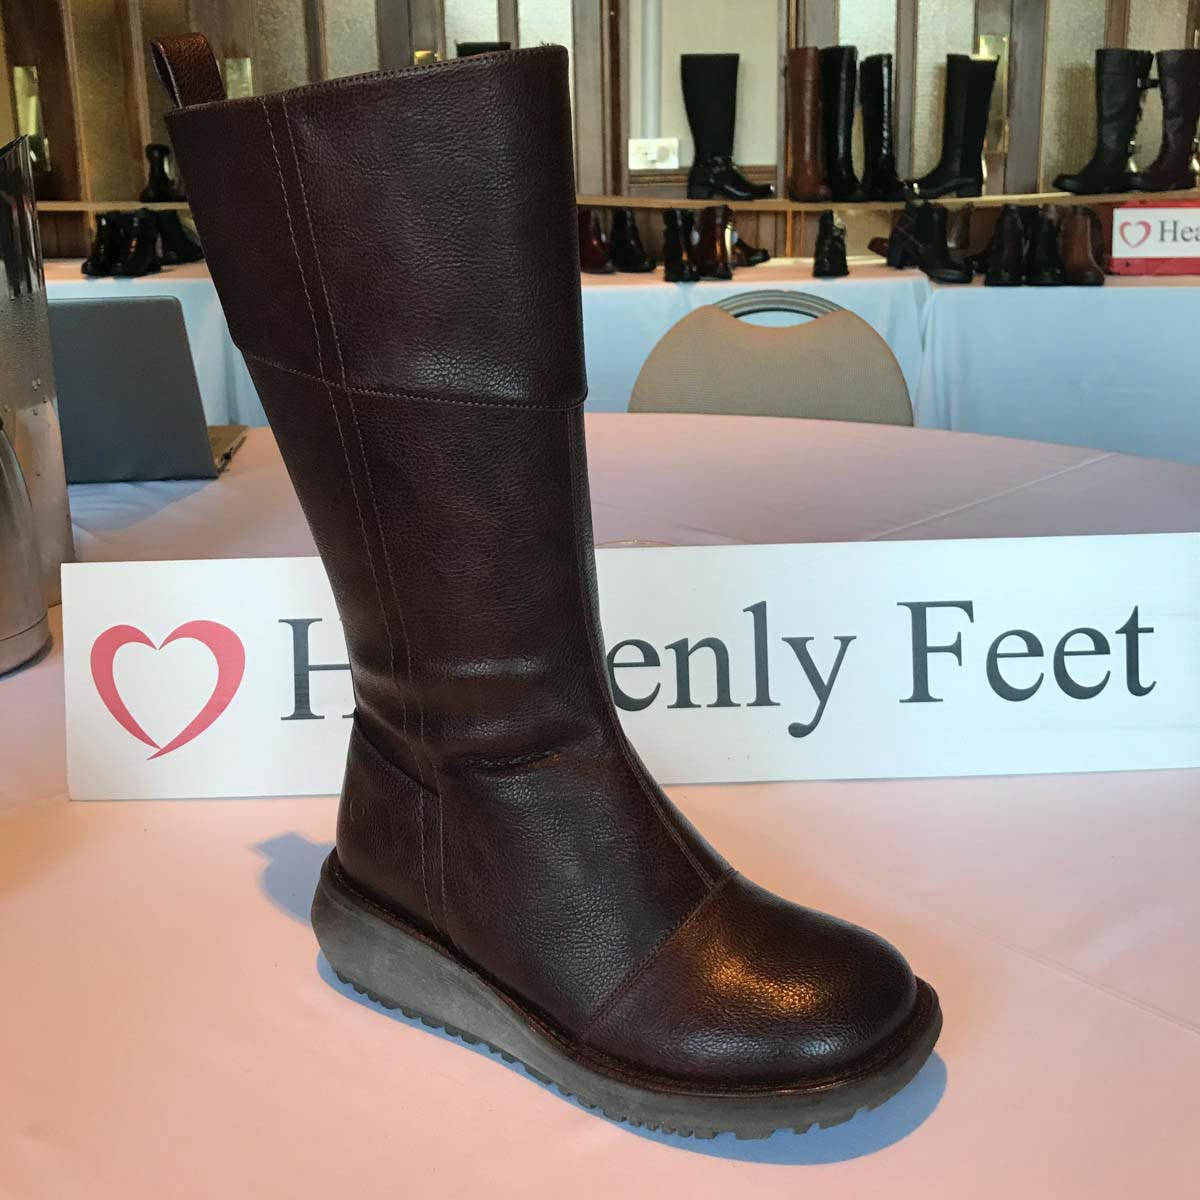 3dceb220 Heavenly Feet Knee-high Boots - Chocolate brown - 9532/20 ROBYN